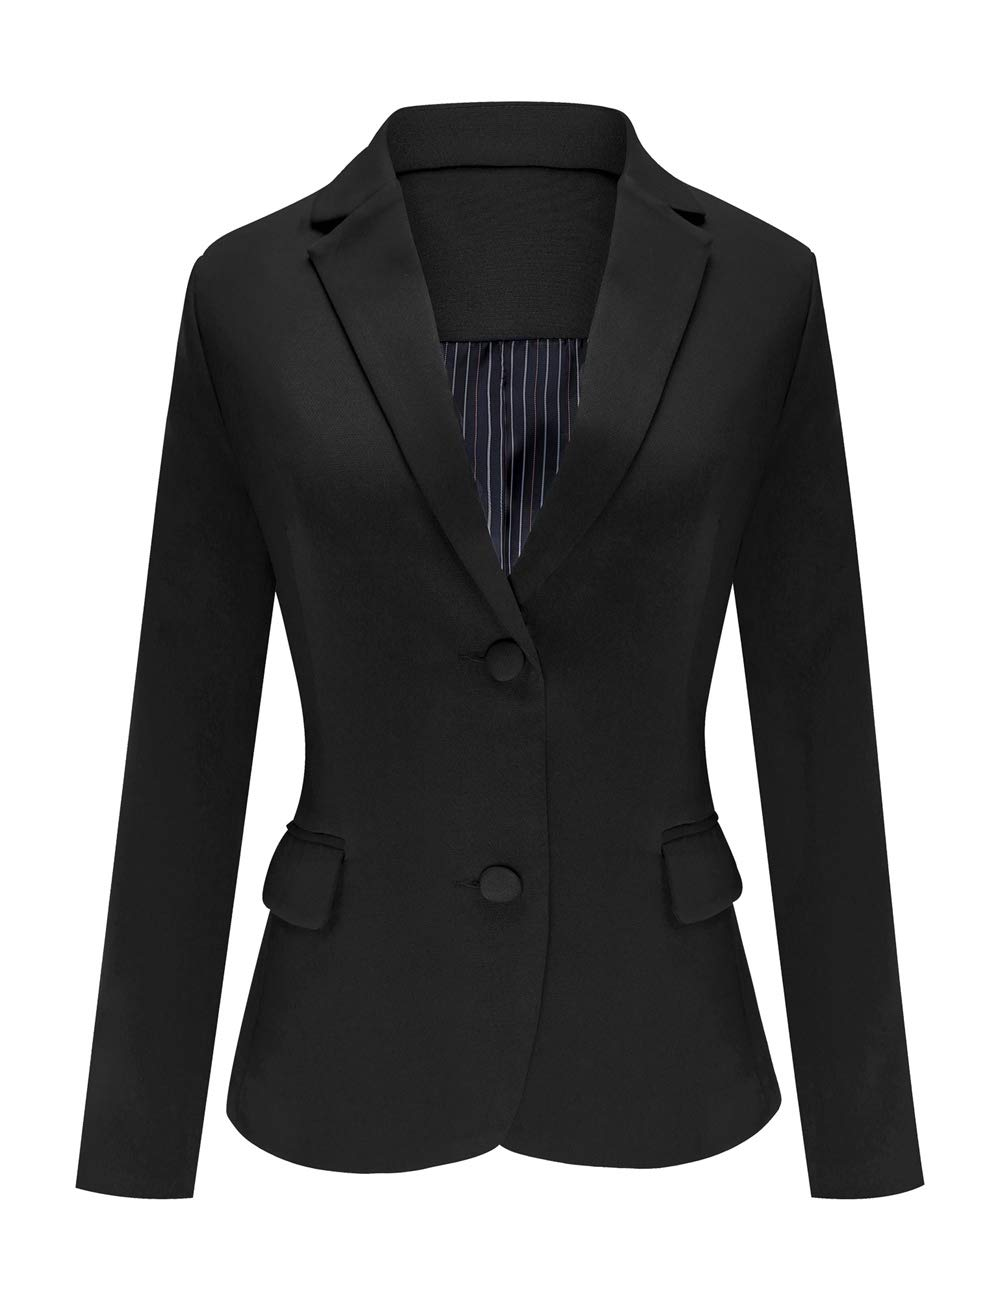 Blue Pink Ladies Blazer Jackets Work Wear 2019 Fashion Casual Long Sleeve Blasers Lady One Button Office Suit Outwear Female Refreshing And Beneficial To The Eyes Blazers